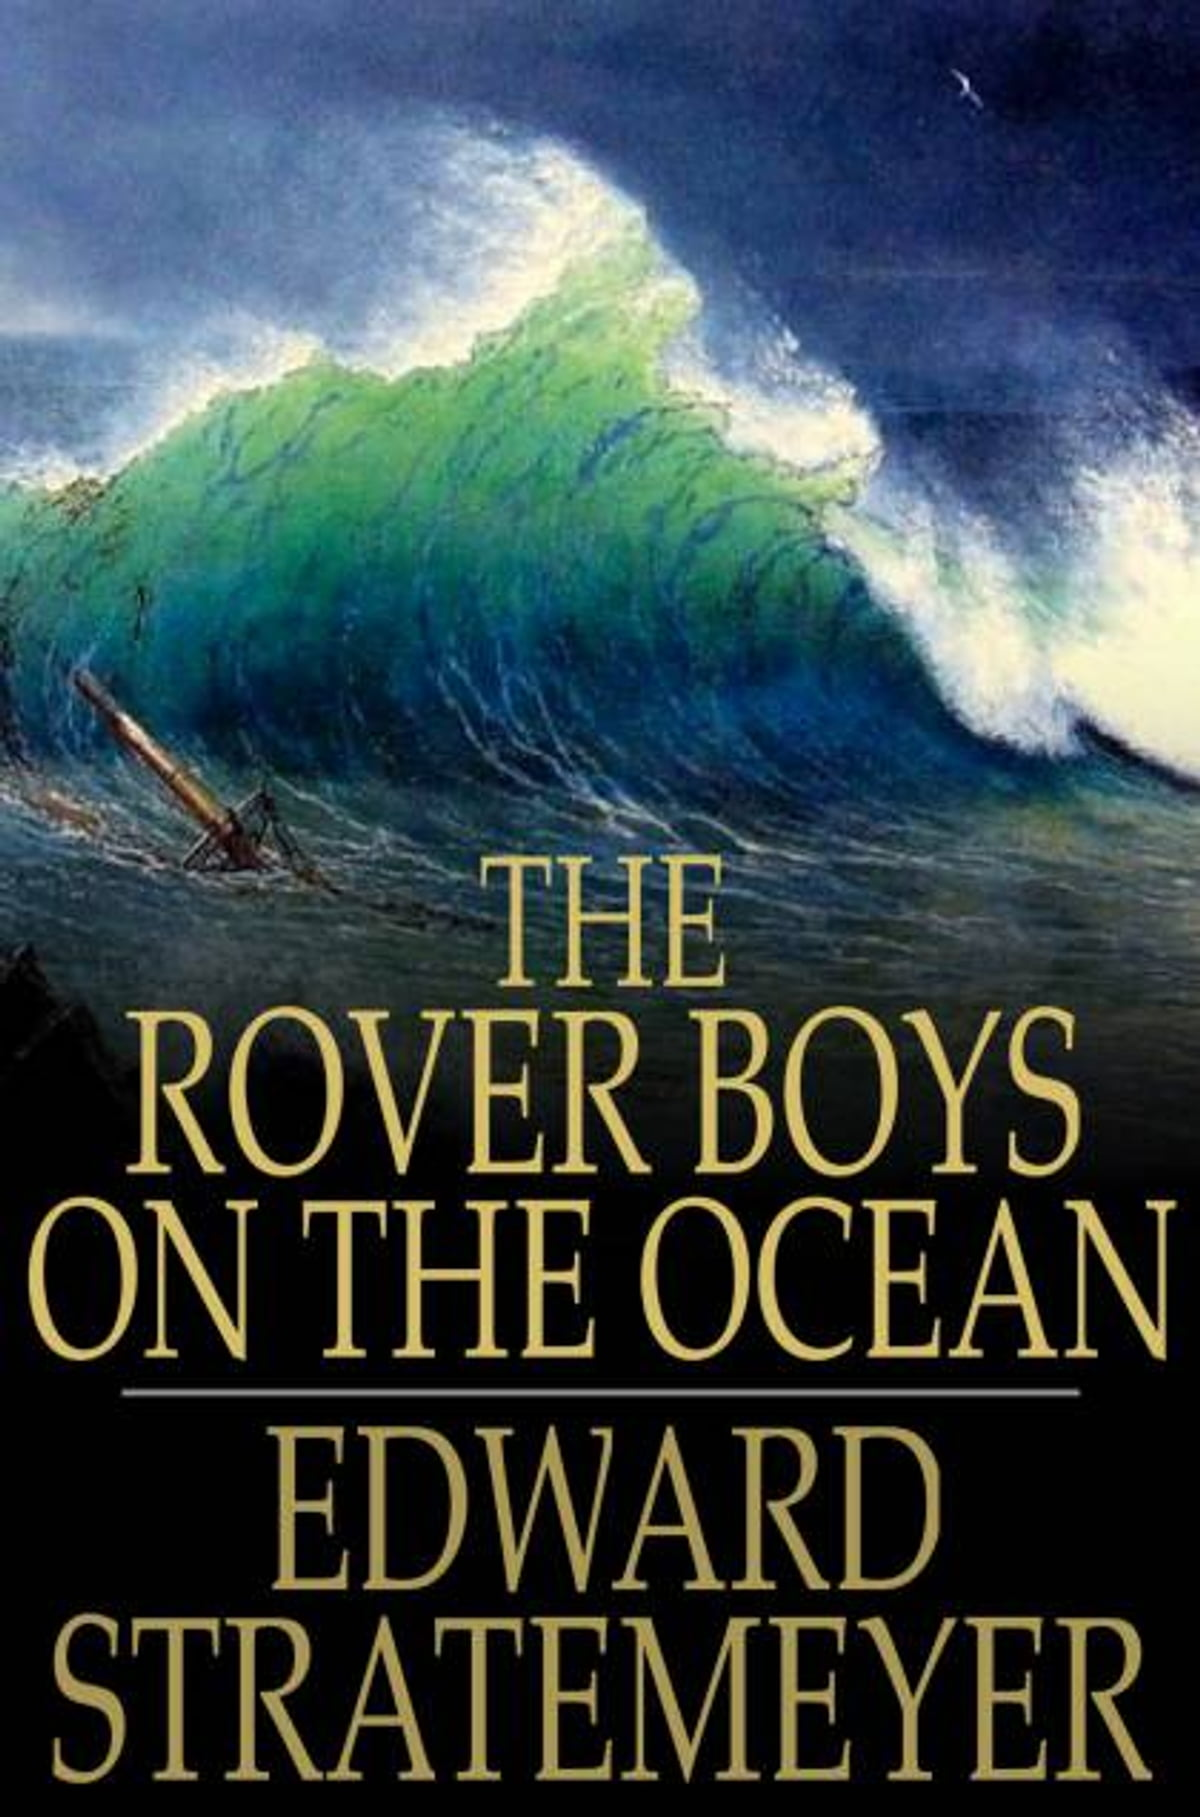 The Rover Boys on the Ocean Or, a chase for a fortune